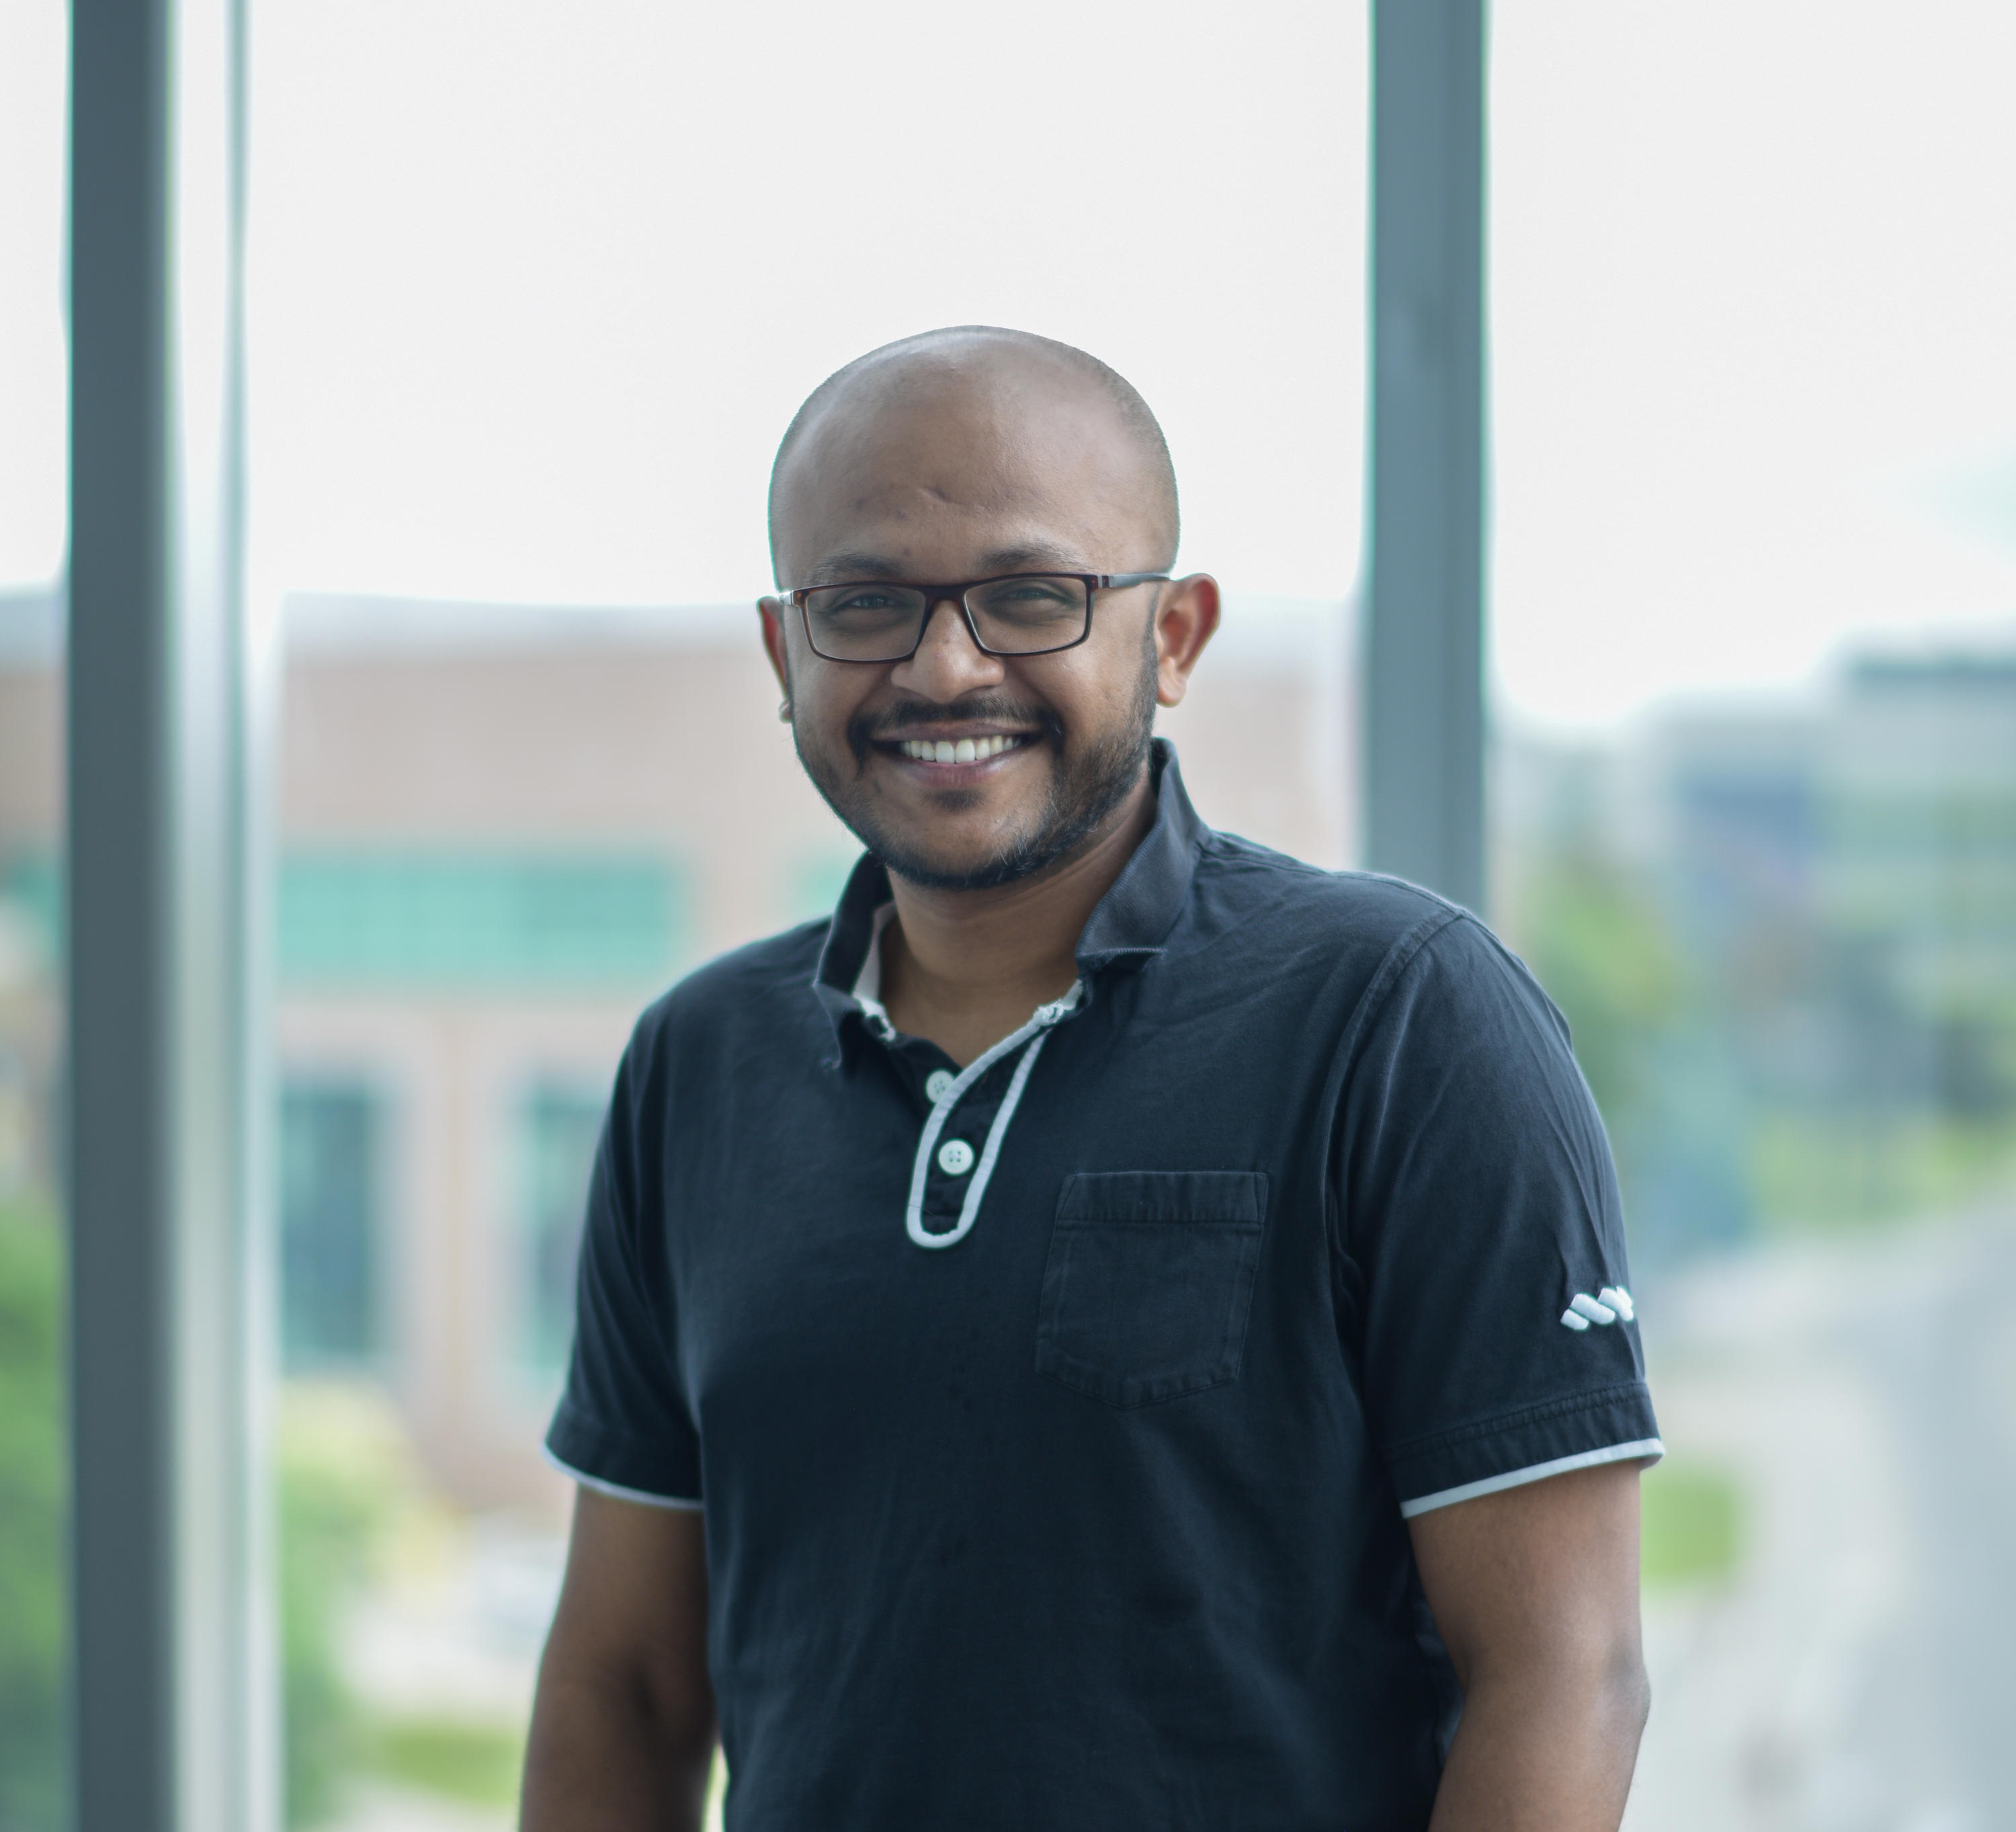 IQC researcher Sainath Motlakunta